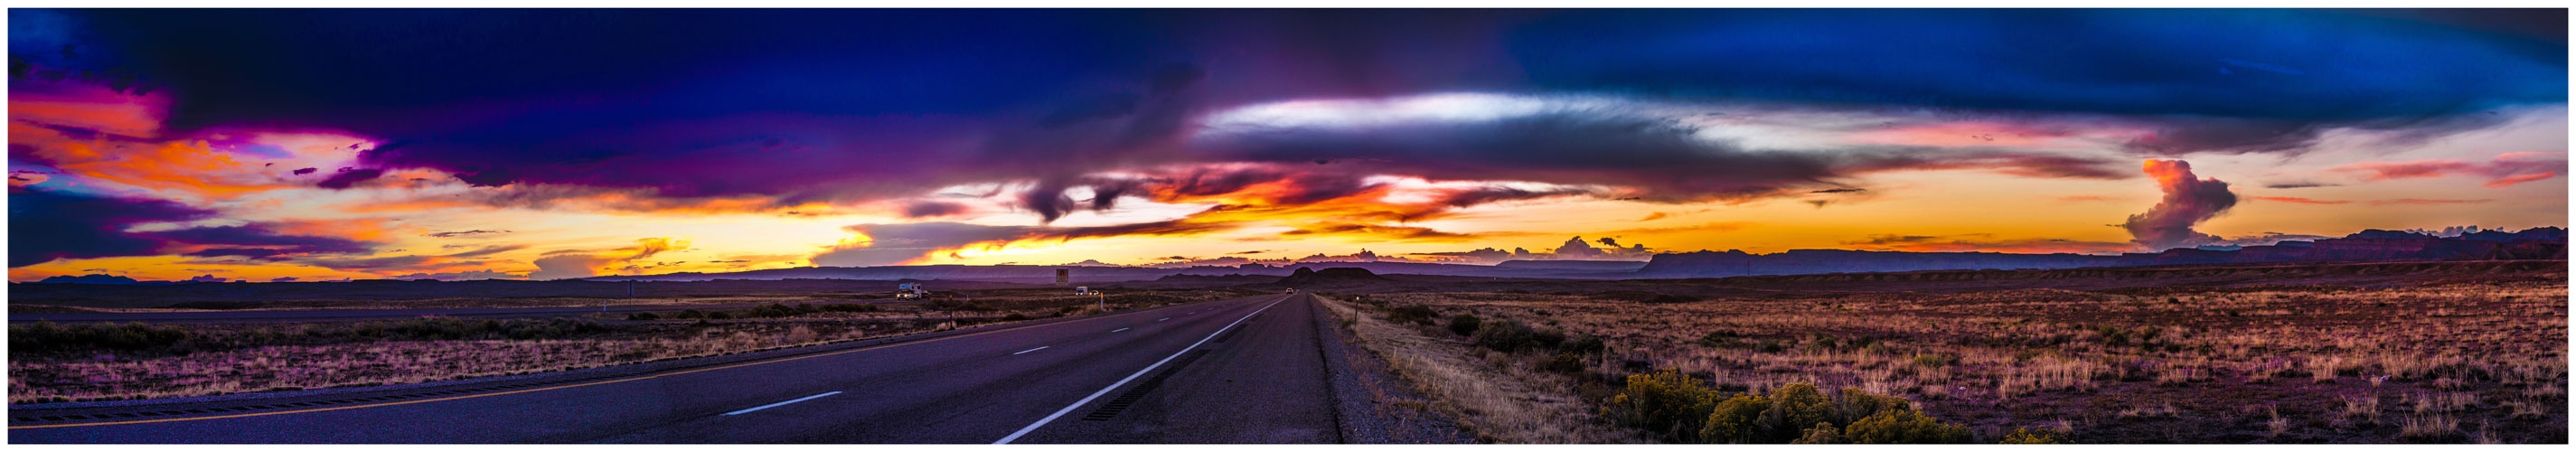 Sunset in eastern Utah from westbound I-70